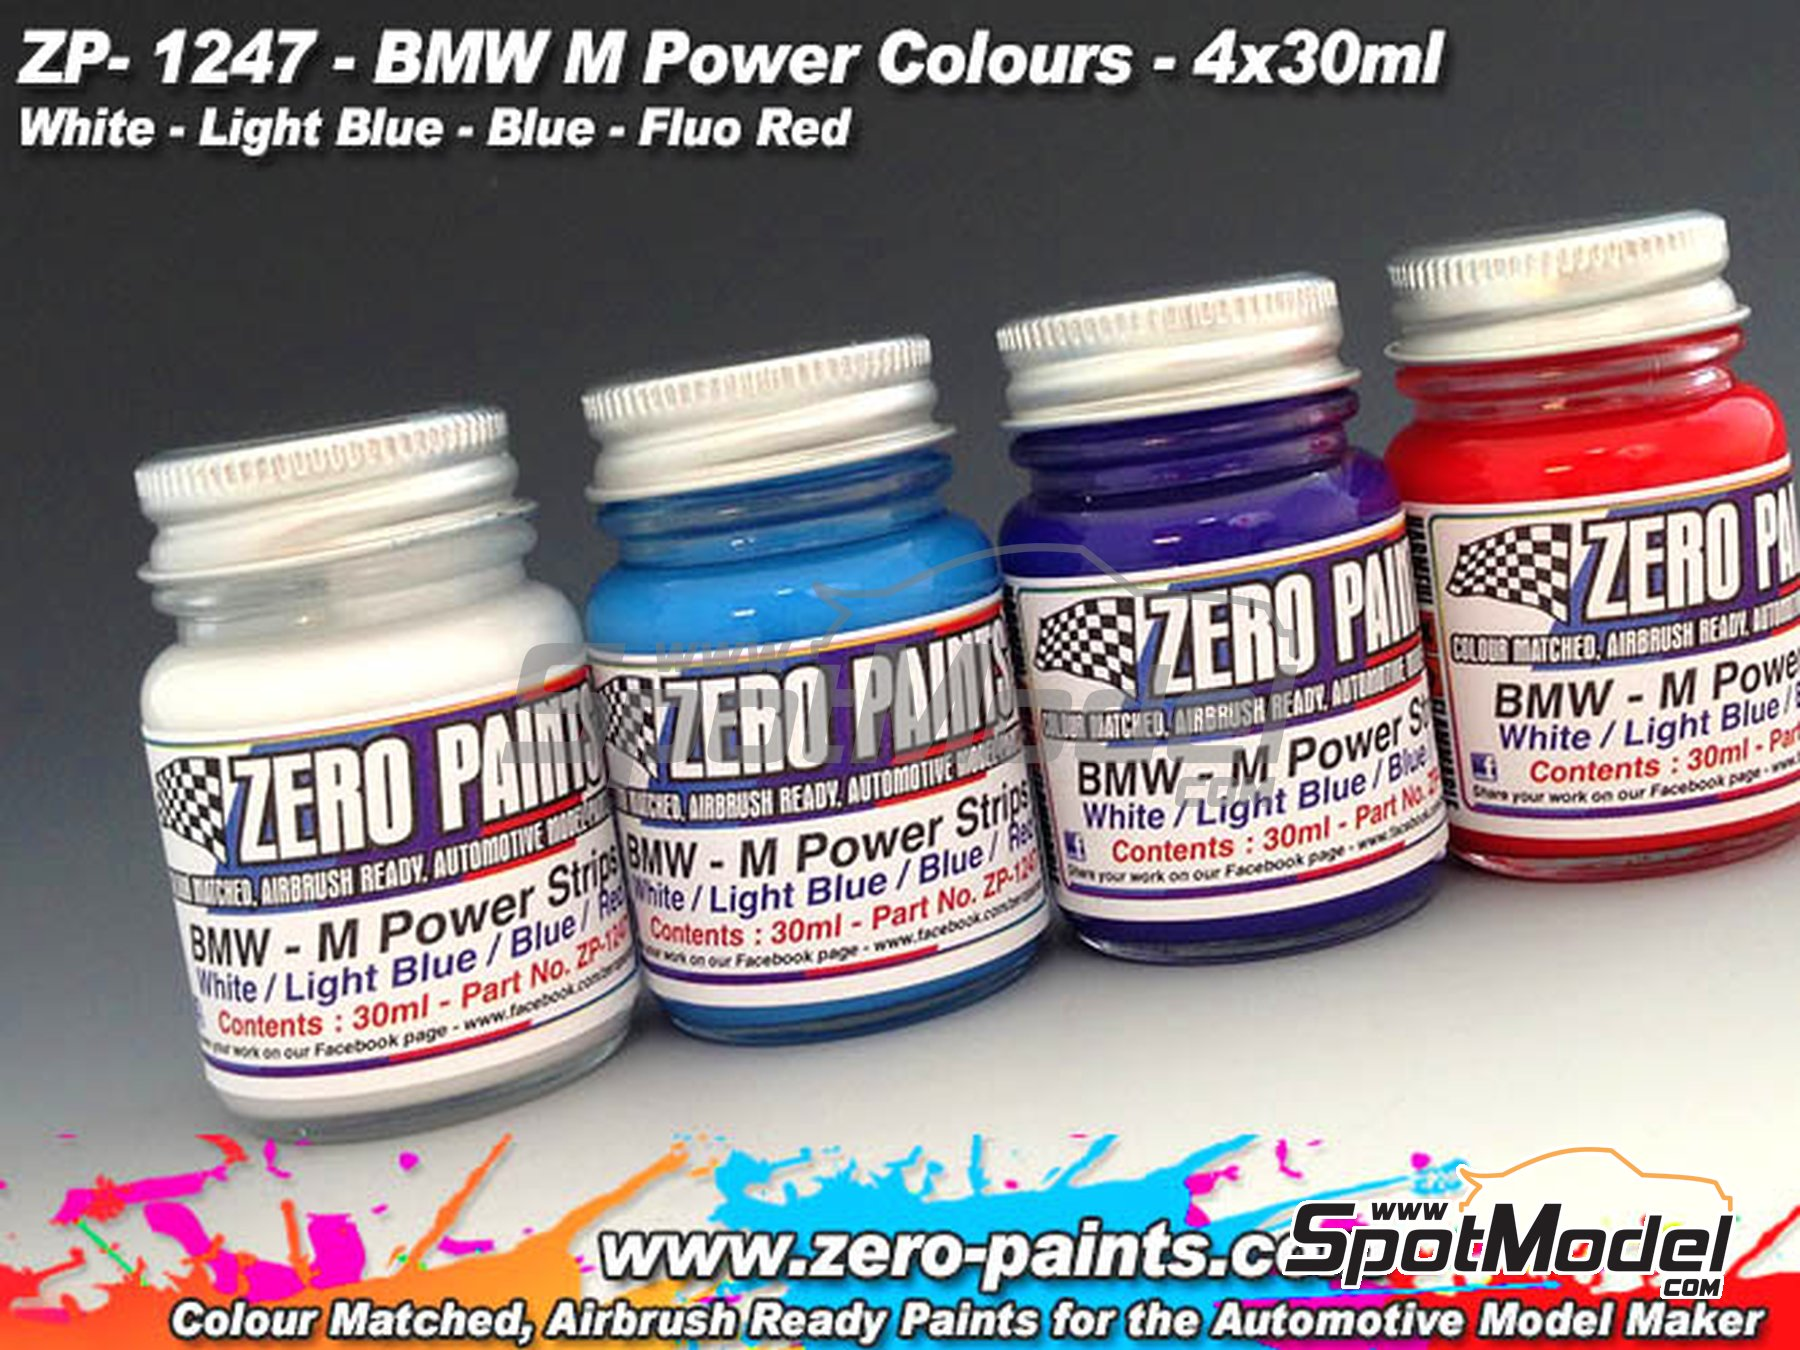 Image 1: BMW M Power - White + light blue + Blue + Fluo Red - 4x30ml | Paints set manufactured by Zero Paints (ref. ZP-1247)